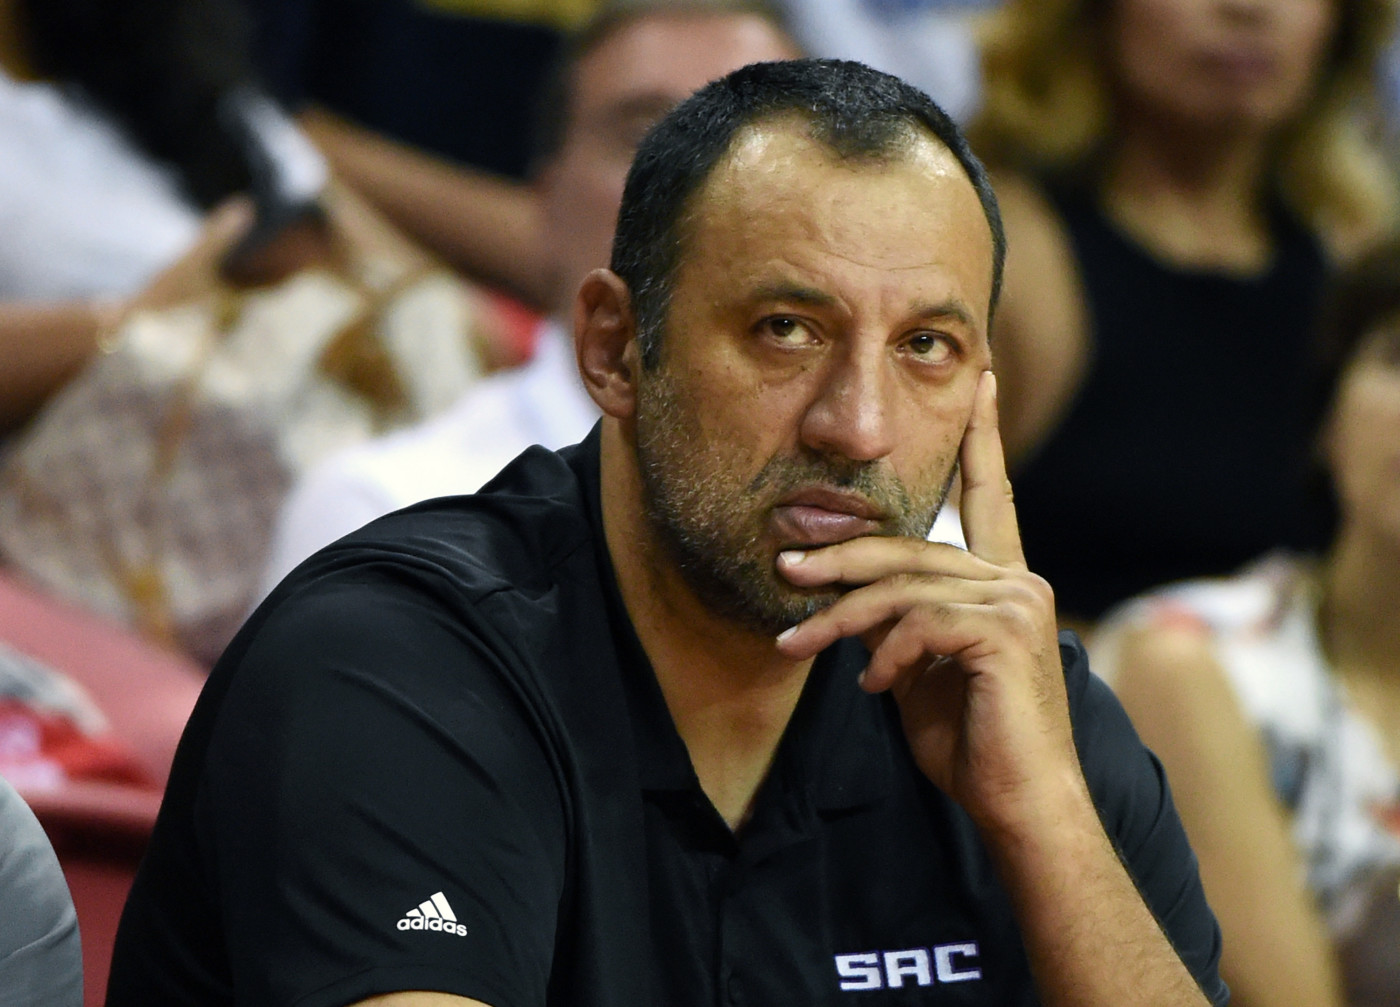 Vice president of basketball operations and general manager of the Sacramento Kings Vlade Divac